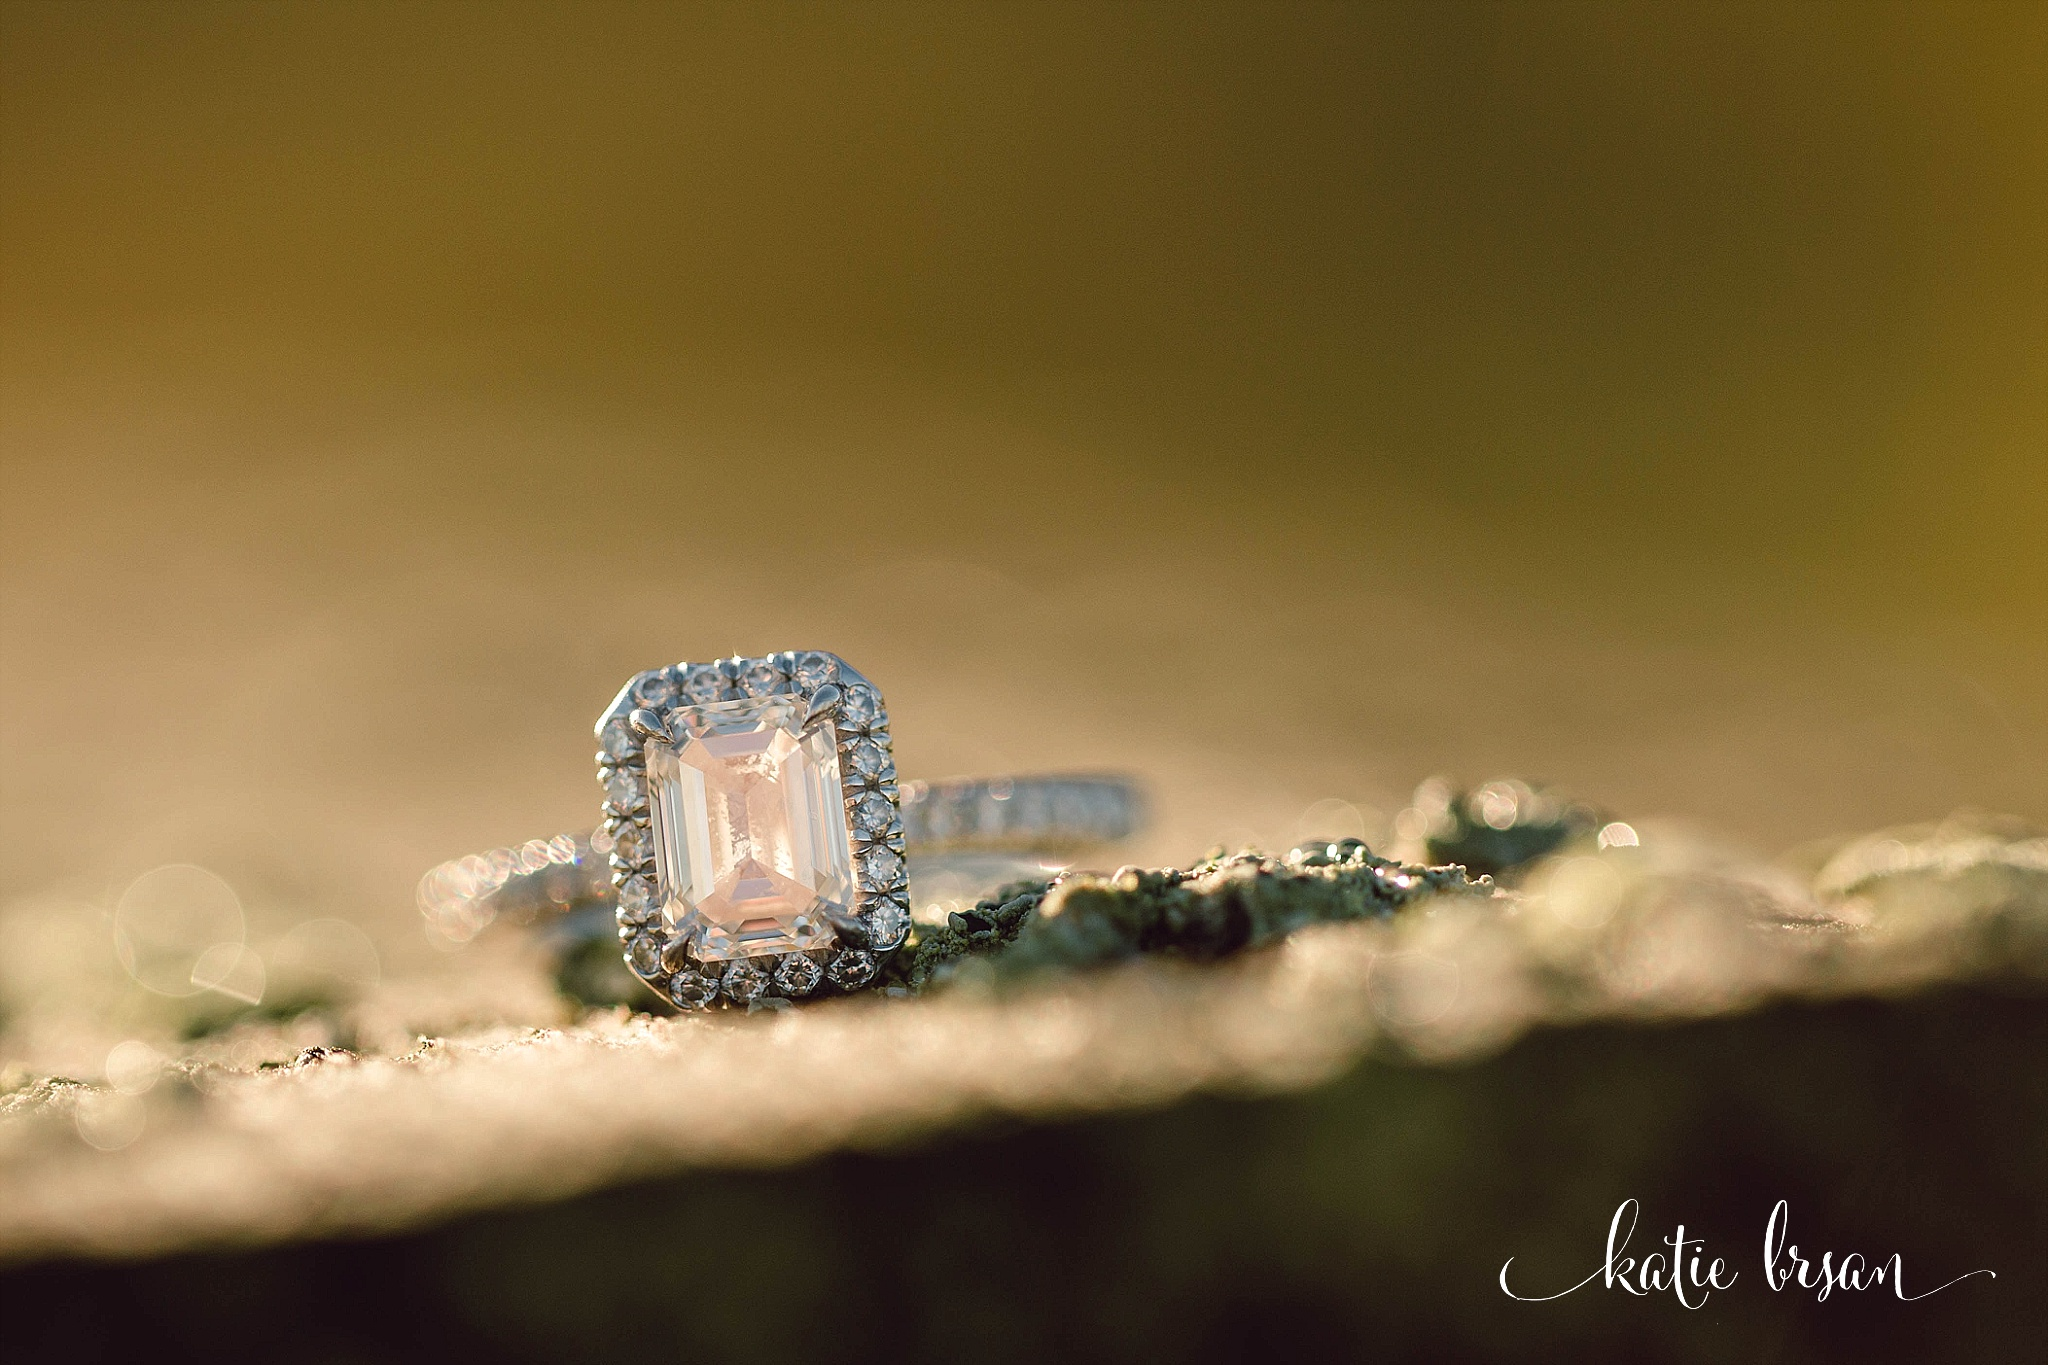 Mokena_EngagementSession_ChicagoWeddingPhotographer_1193.jpg